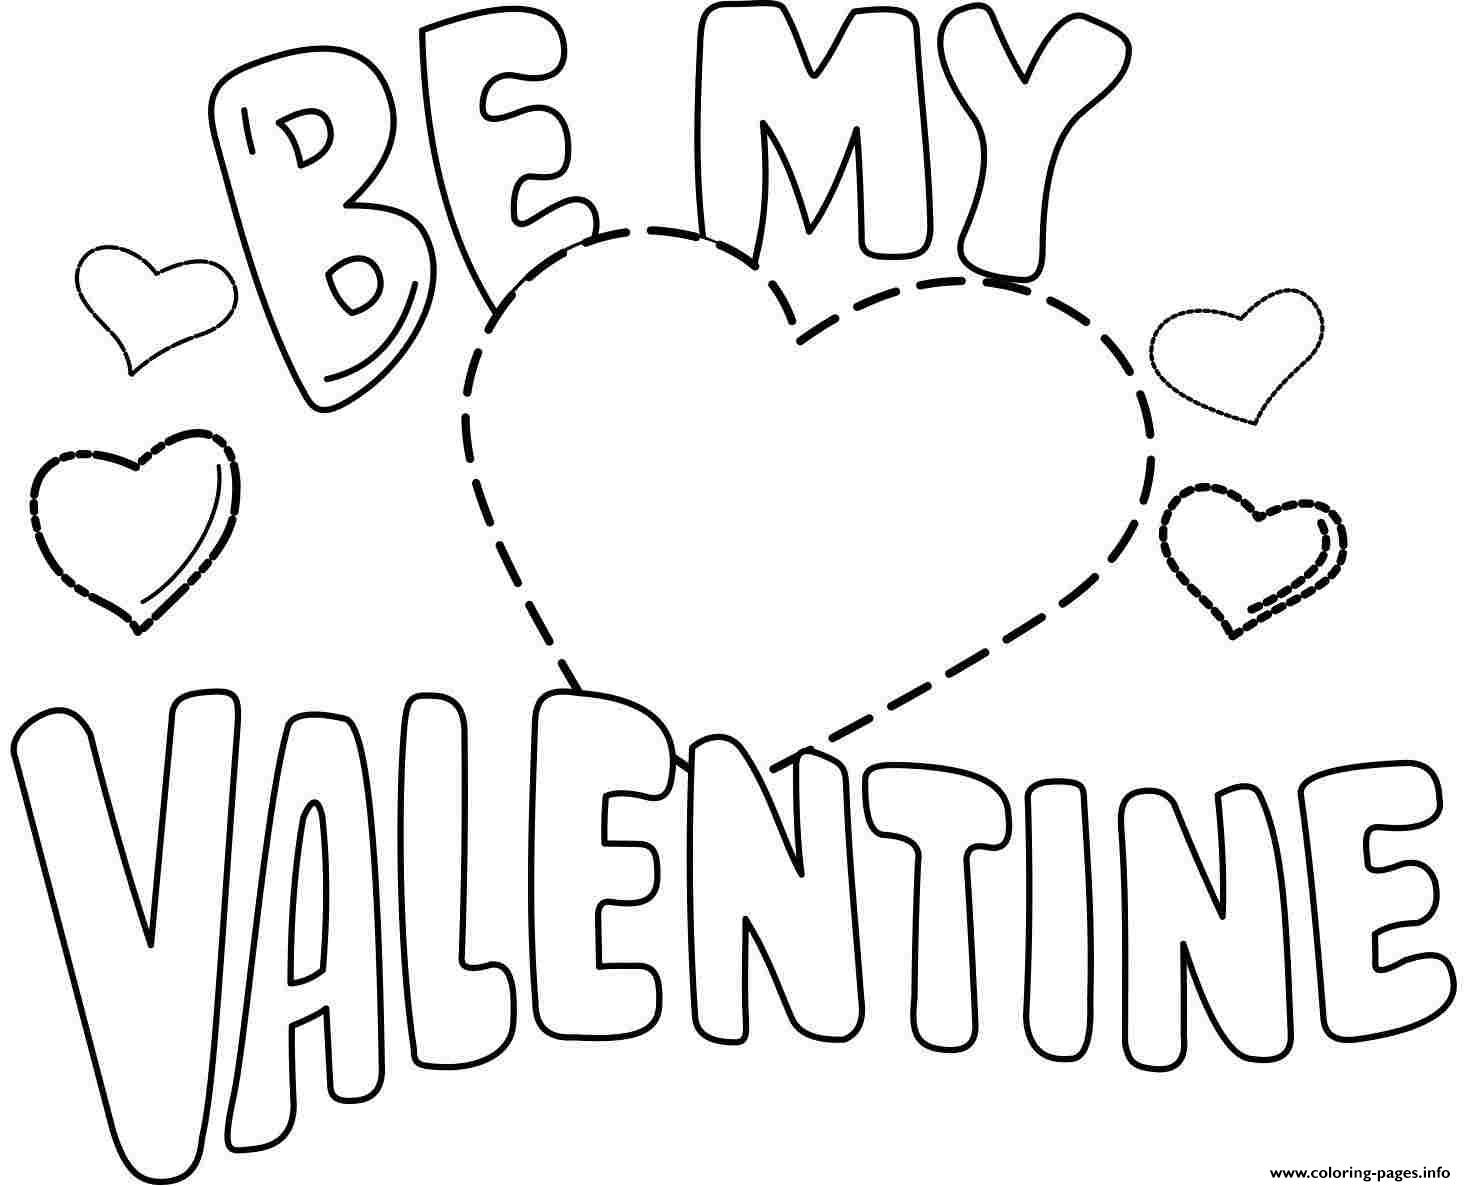 Valentines Day Coloring Page Be My Valentine Valentines Day Coloring Pages Printable